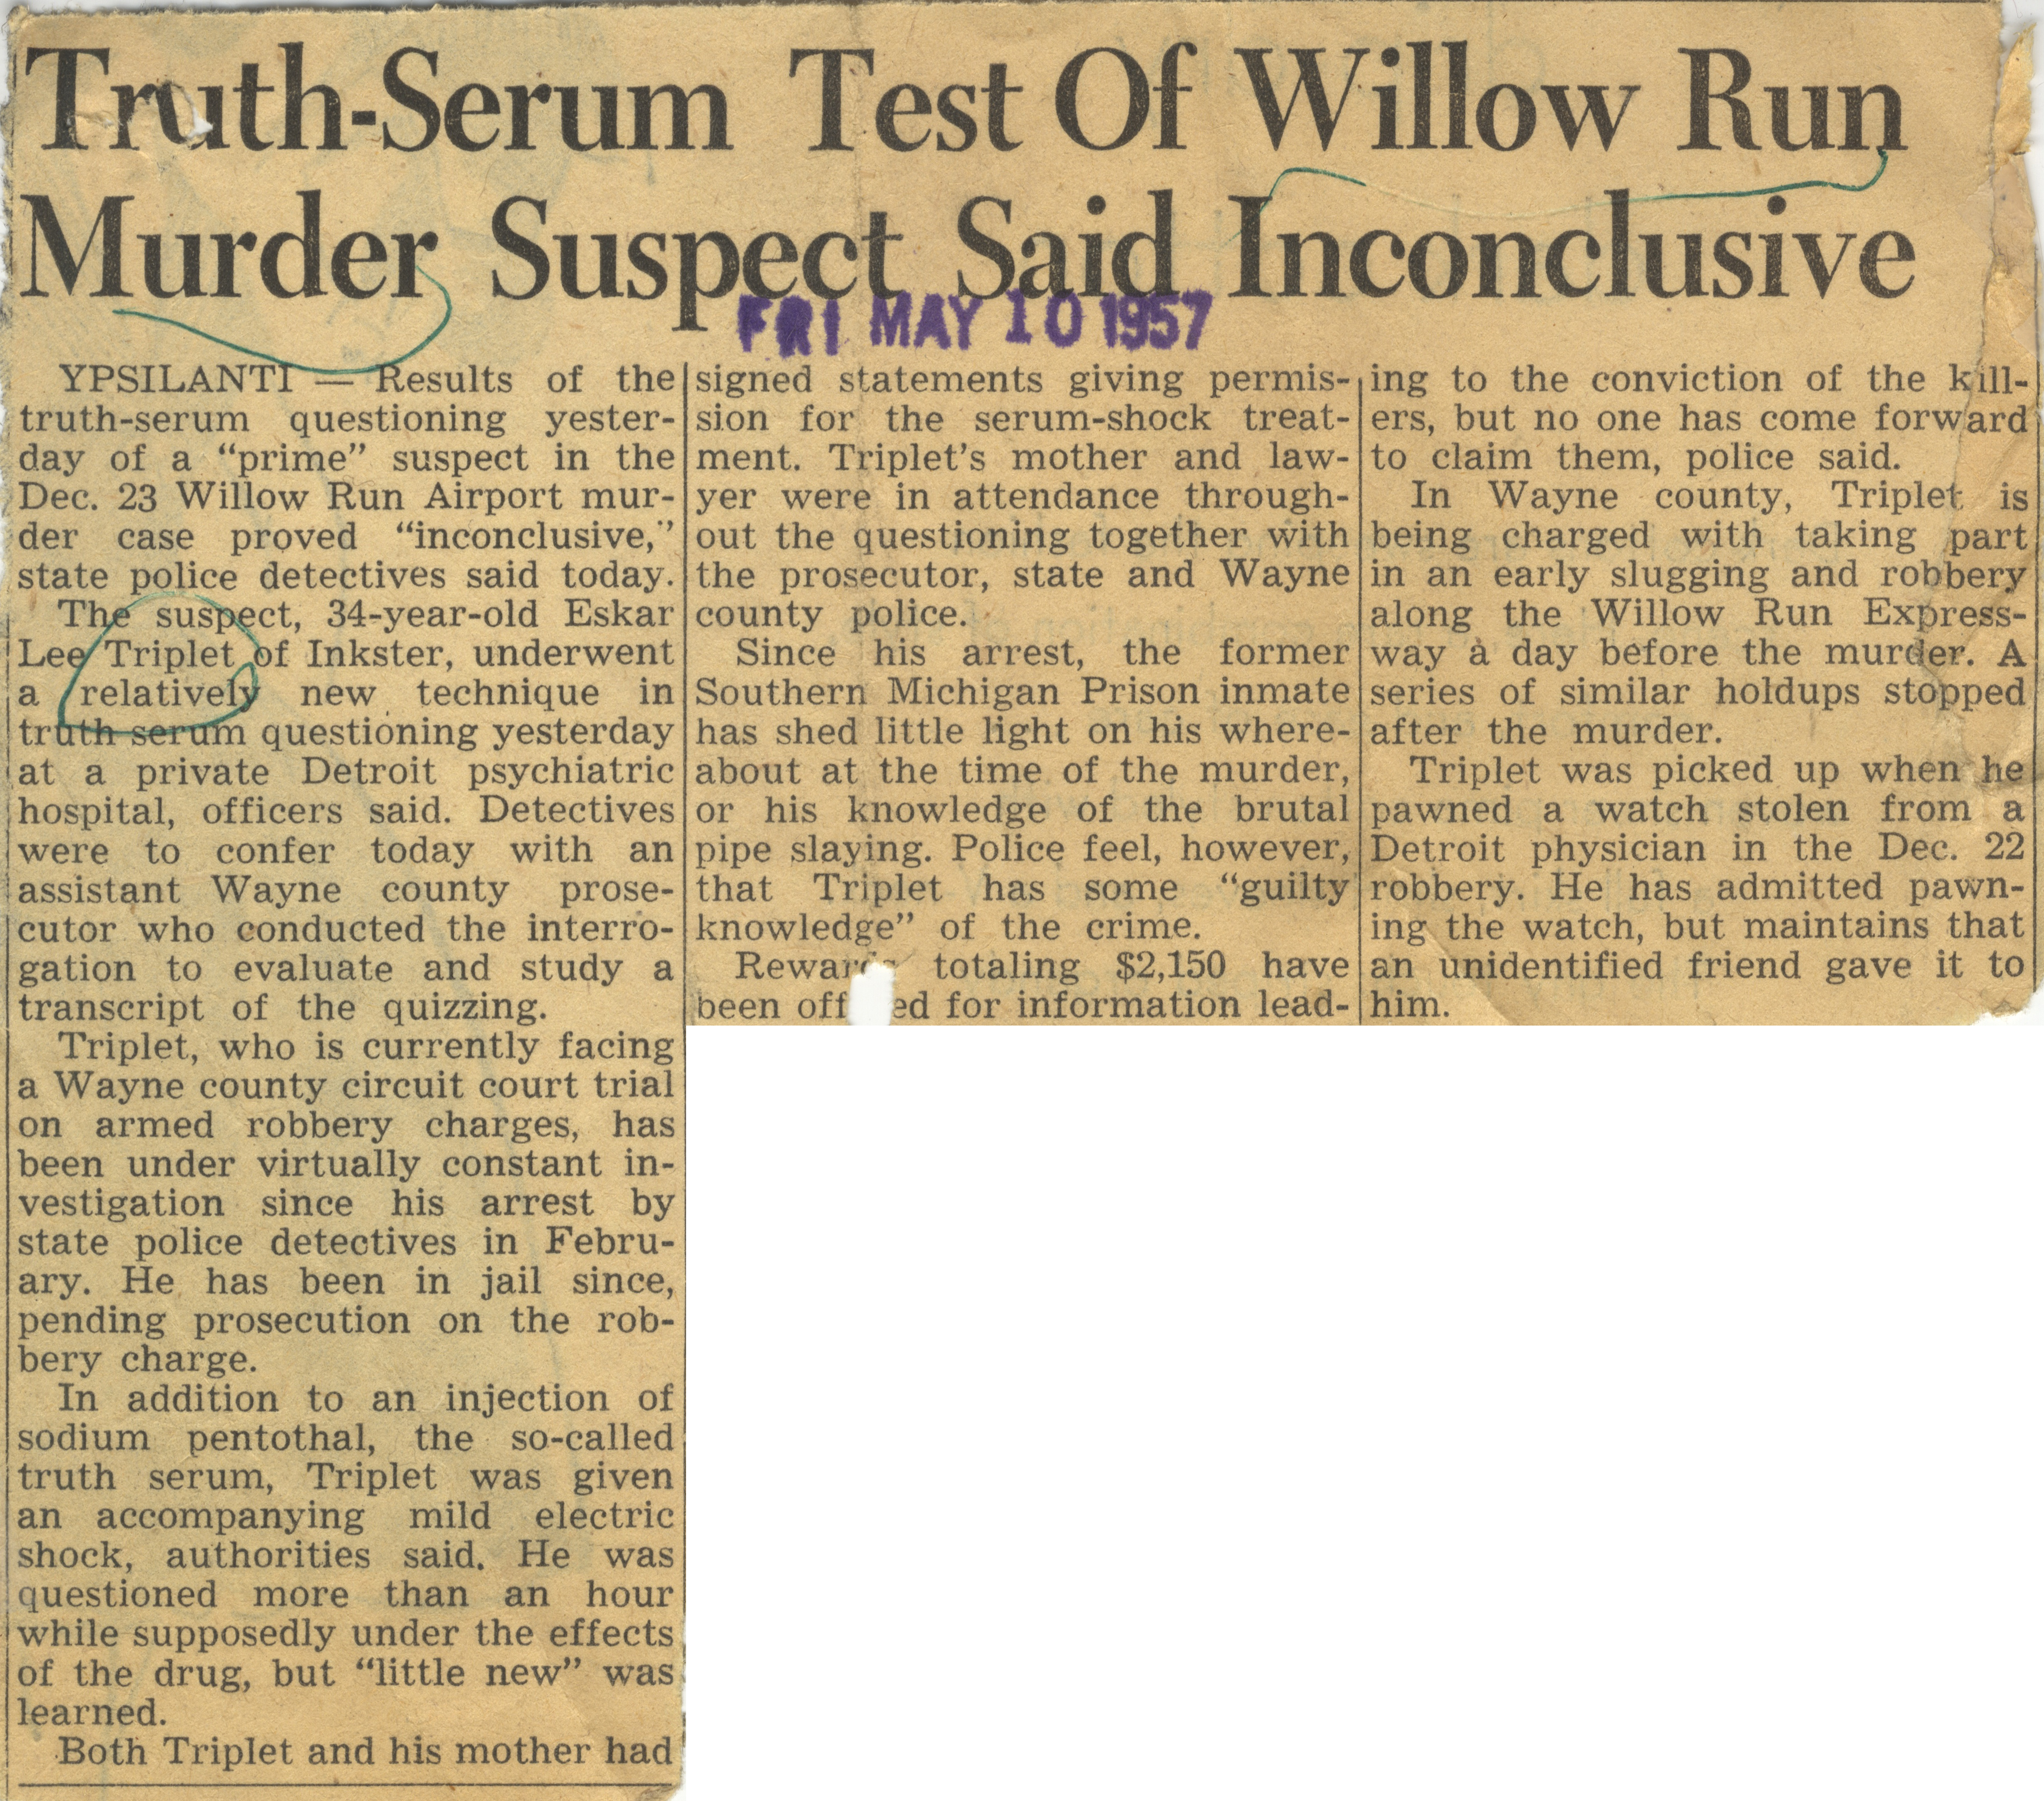 Truth-Serum Test Of Willow Run Murder Suspect Said Inconclusive image